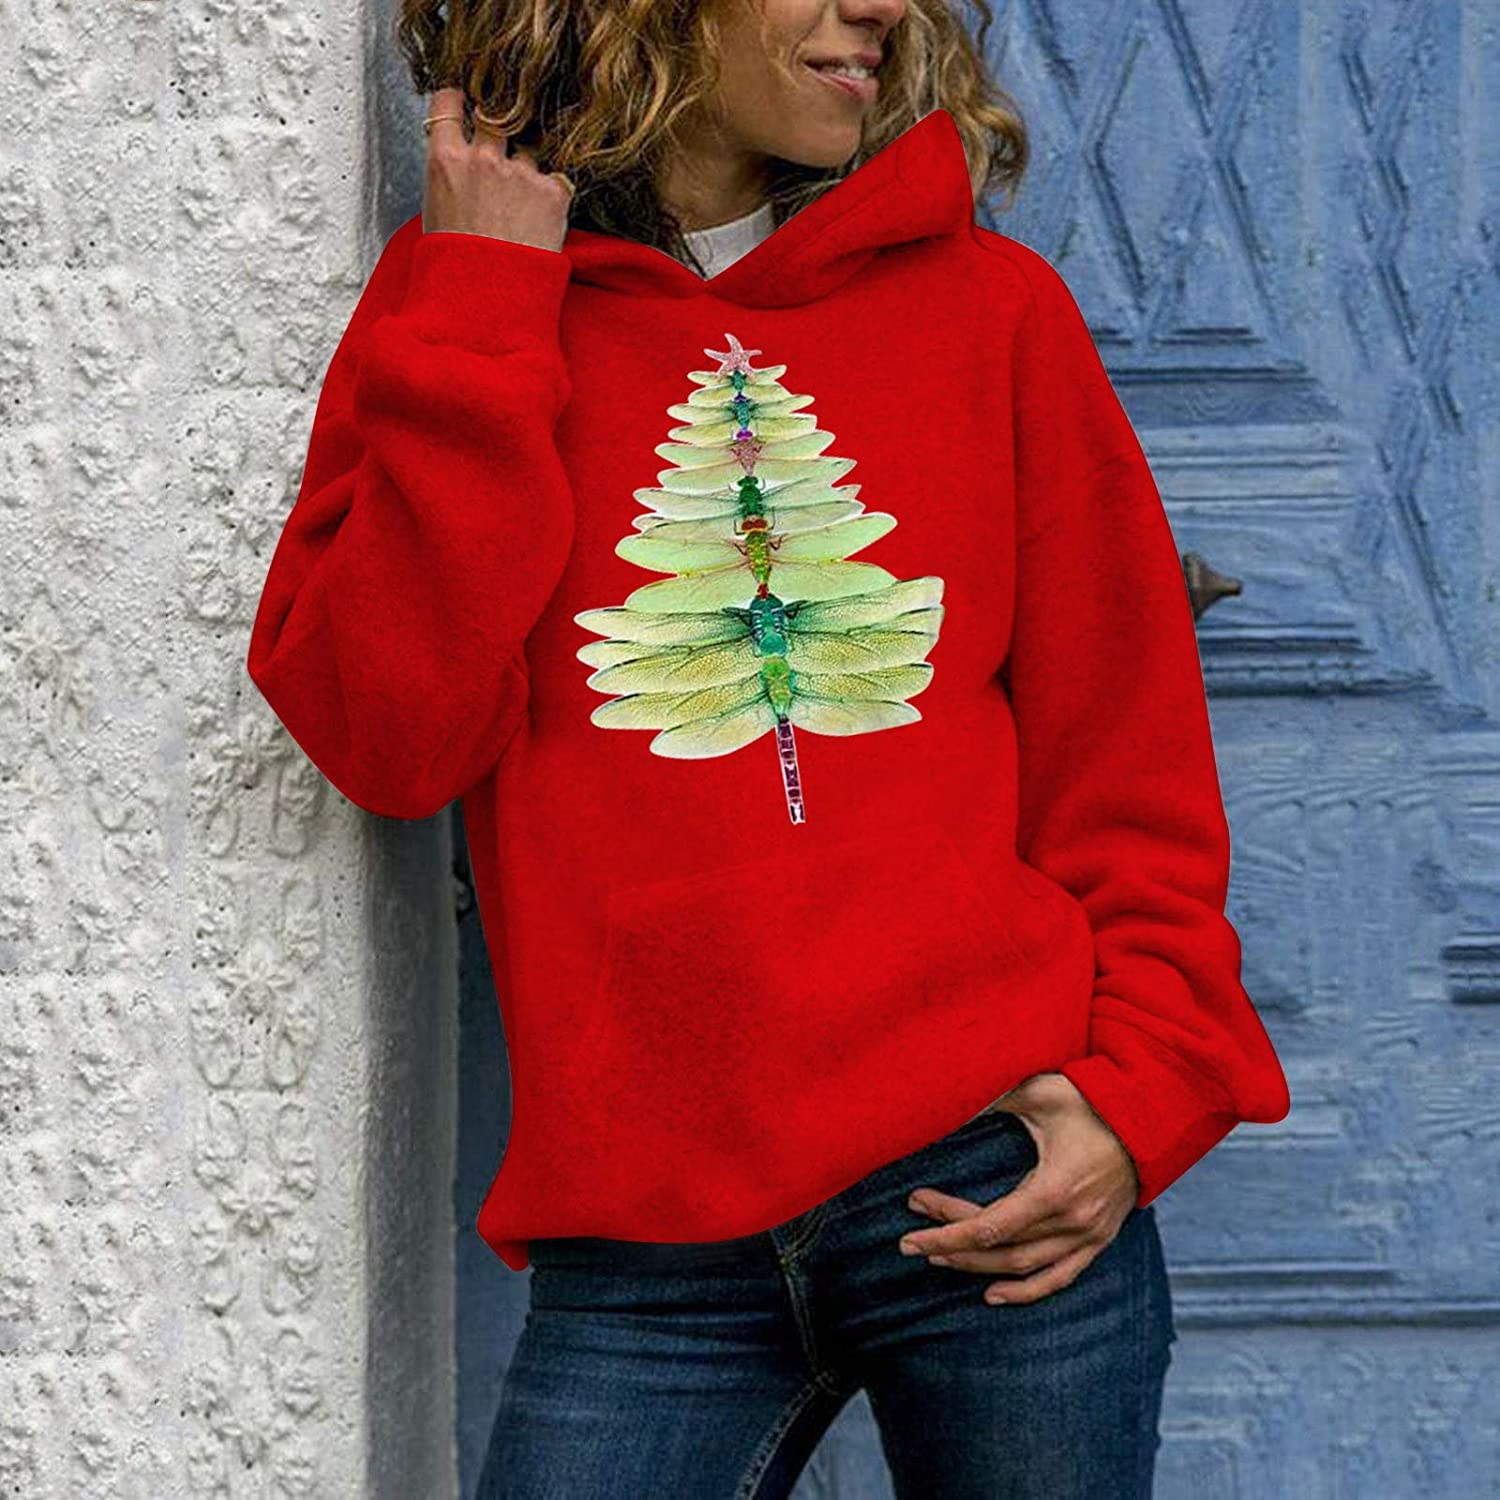 FUNEY Christmas Tree 3D Print Hooded Sweatshirt Casual O-Neck Long Sleeve Leisure Slouchy Pullover Tunic Tops for Women